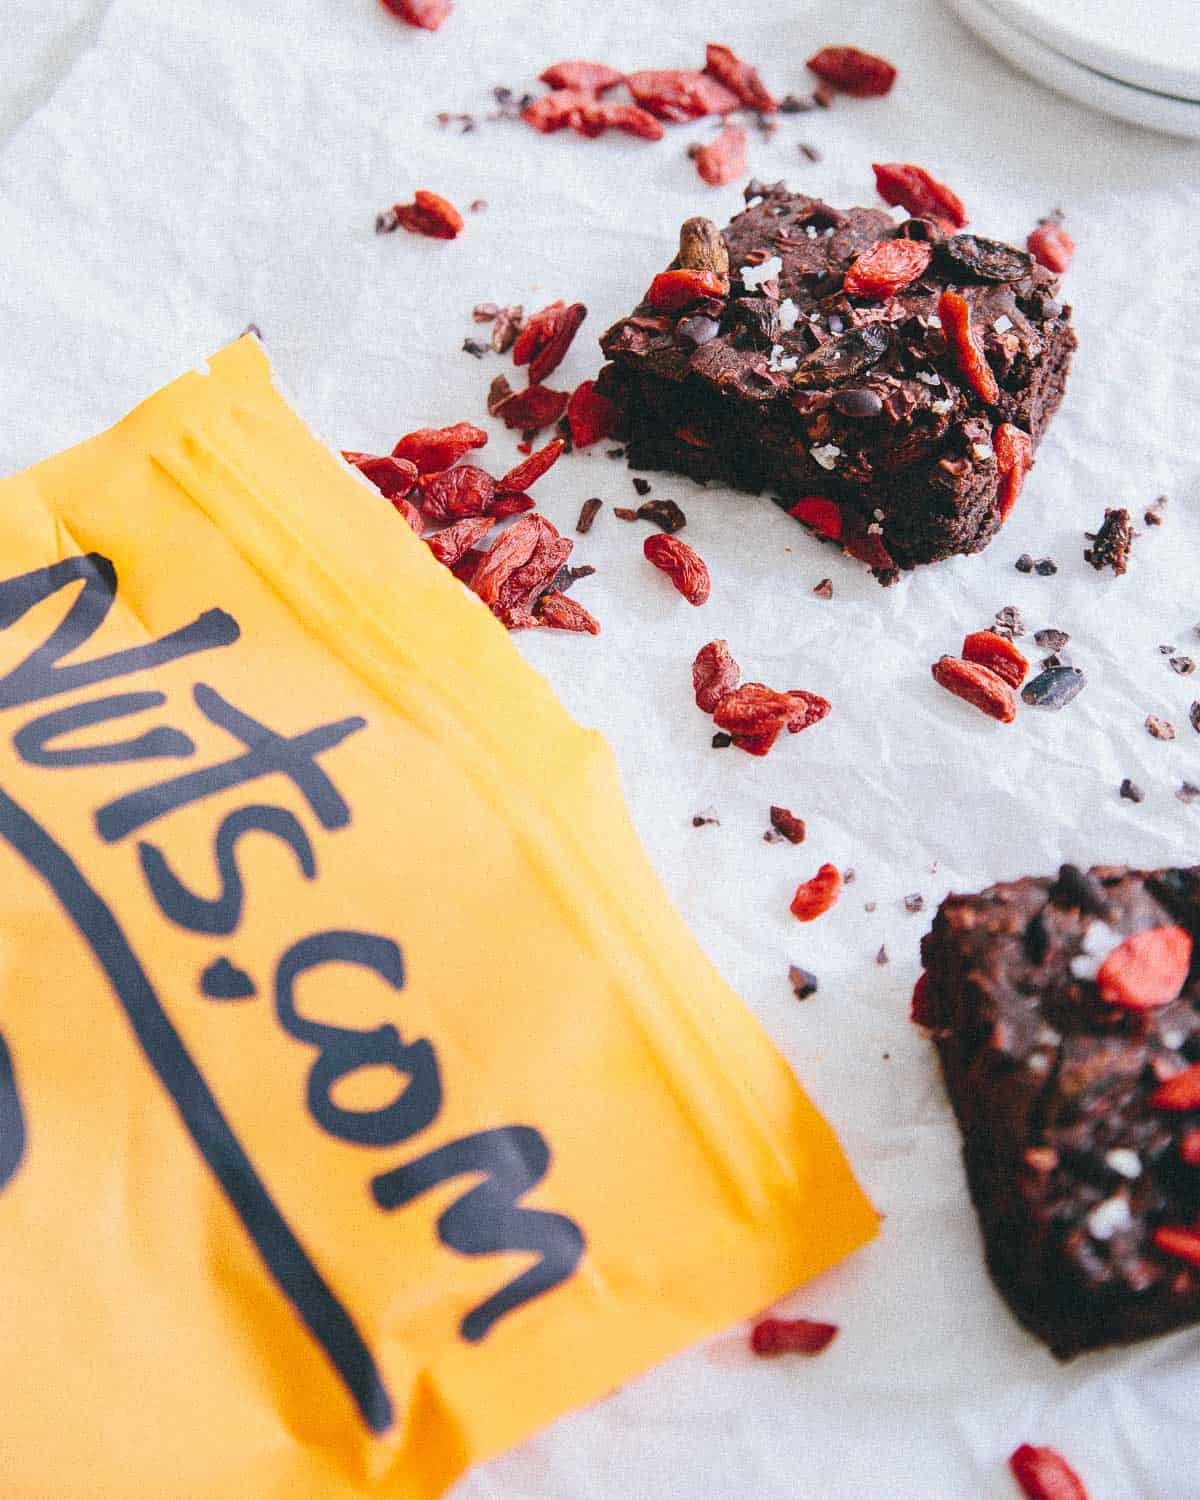 Superfood Brownies made with goji berries and cacao nibs from Nuts.com are fudgy, chewy and even gluten free!